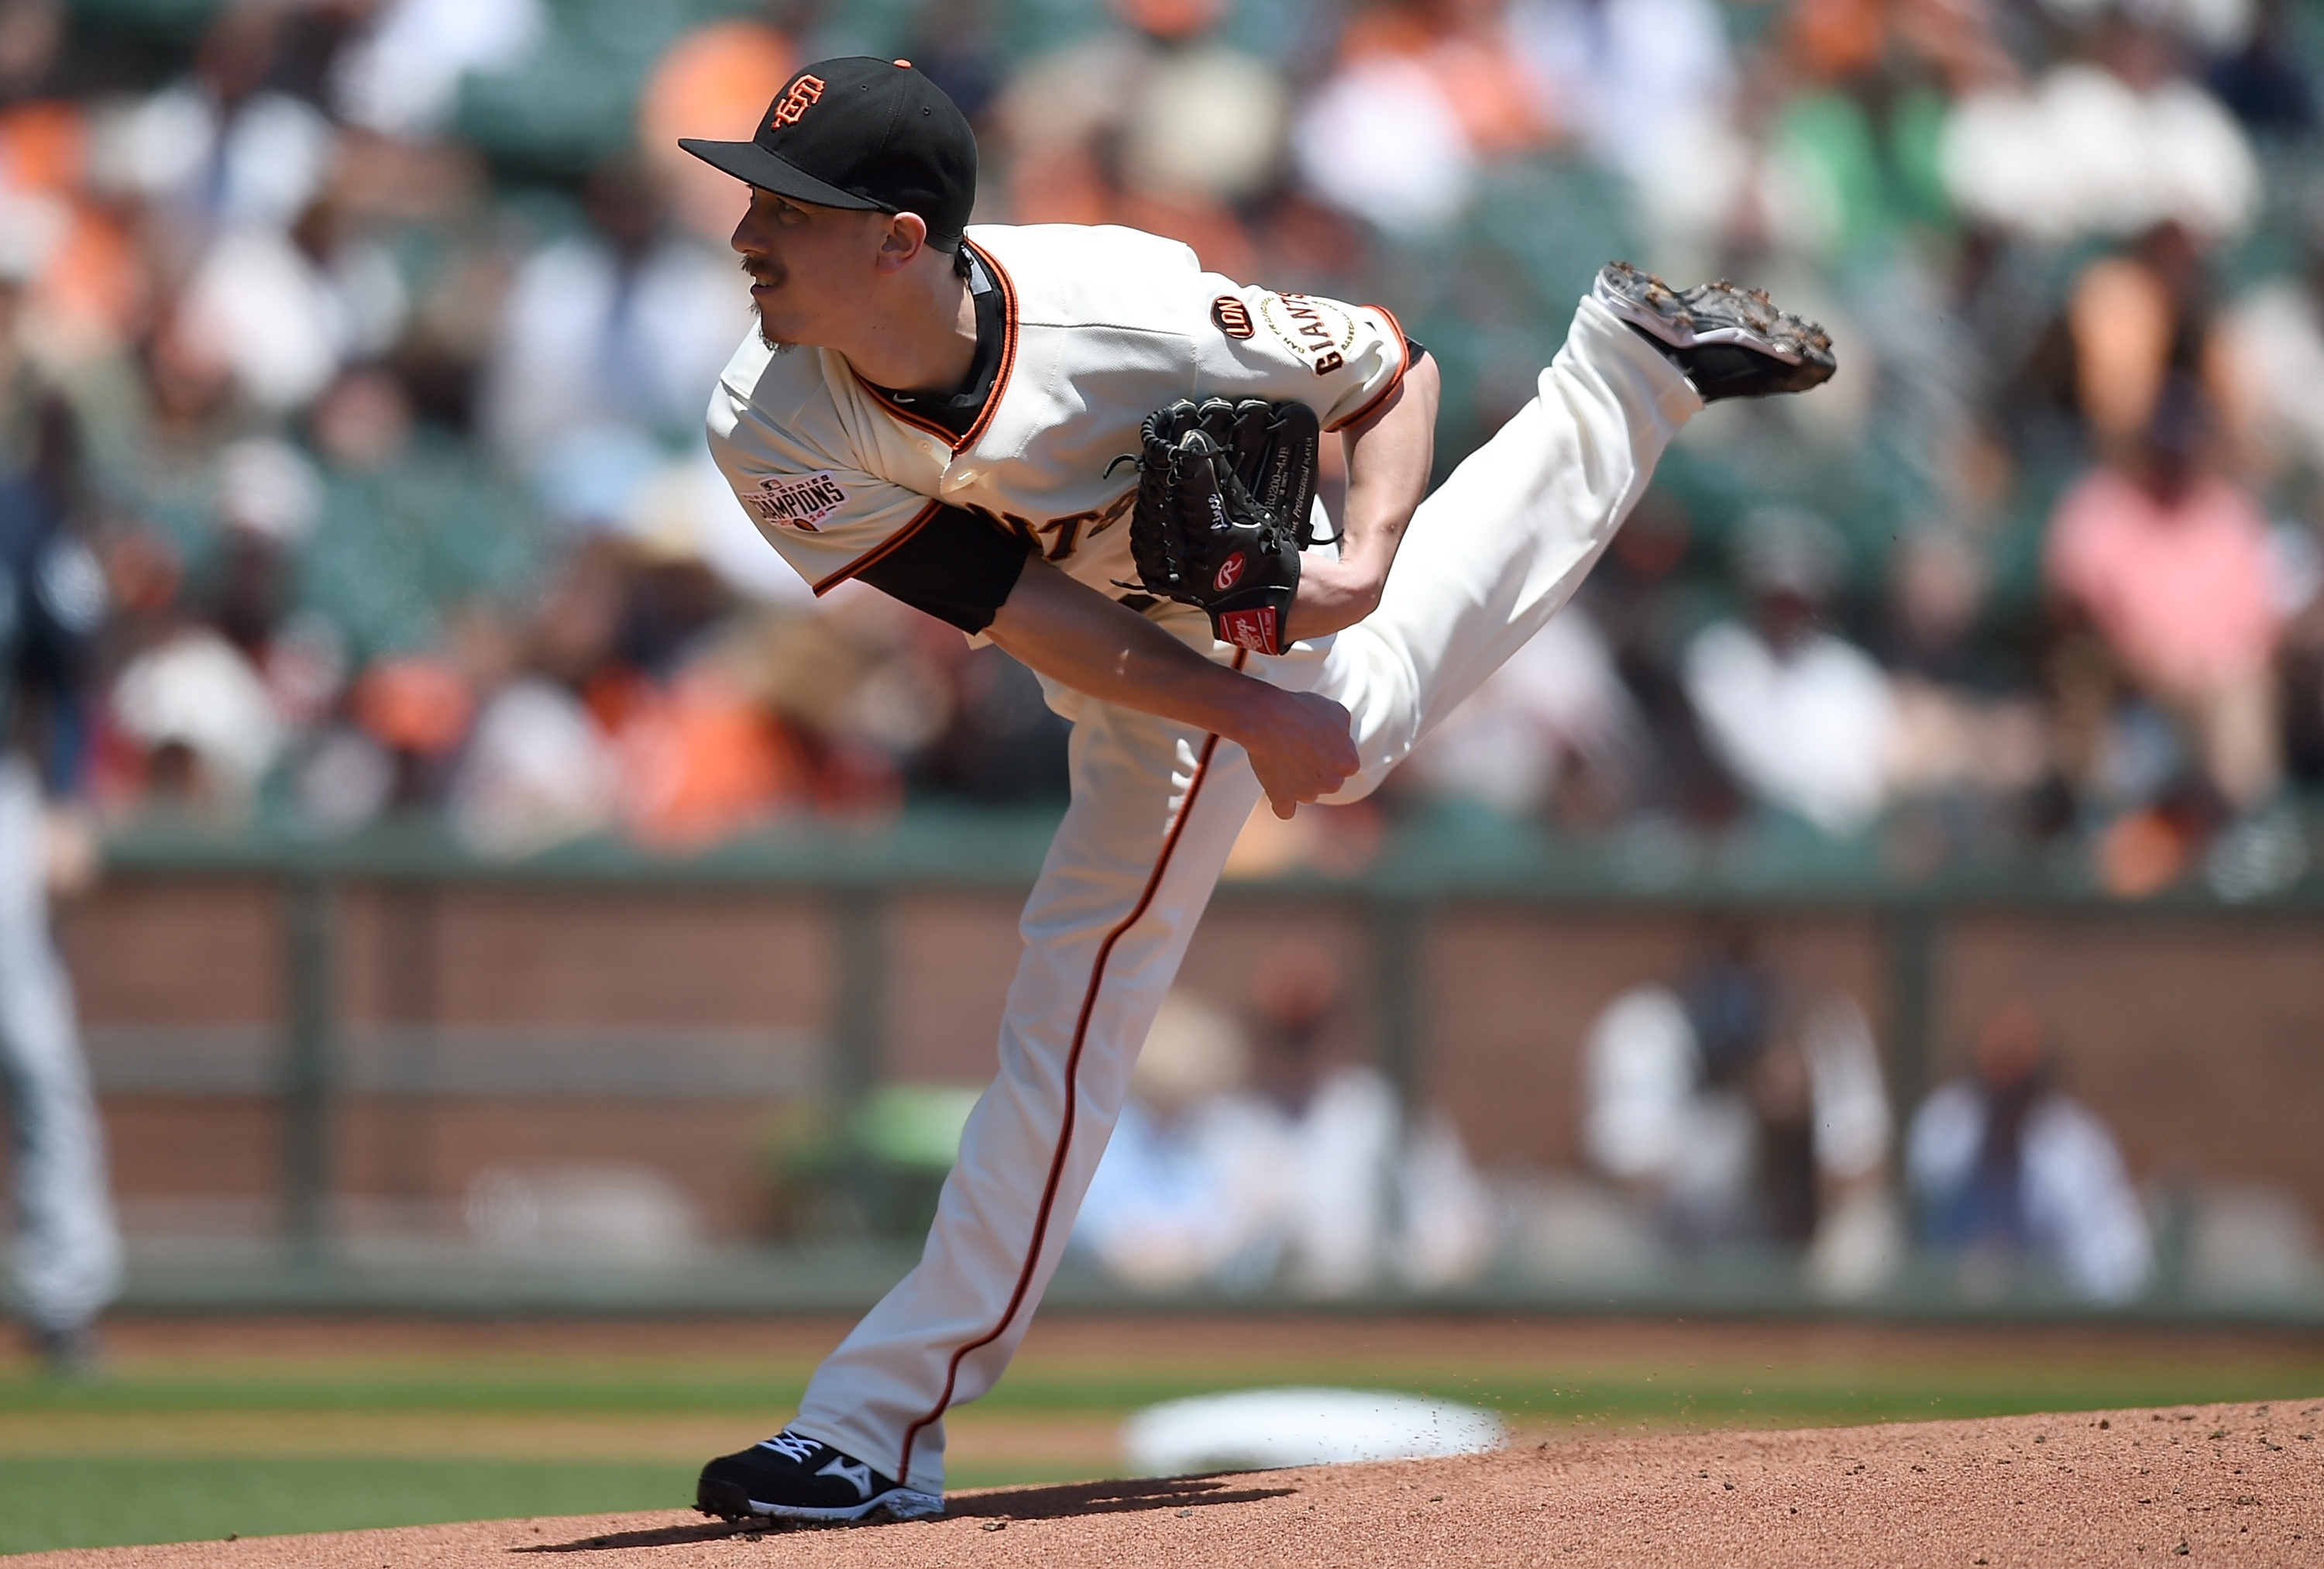 Tim Lincecum has possibly thrown his last pitch for the Giants